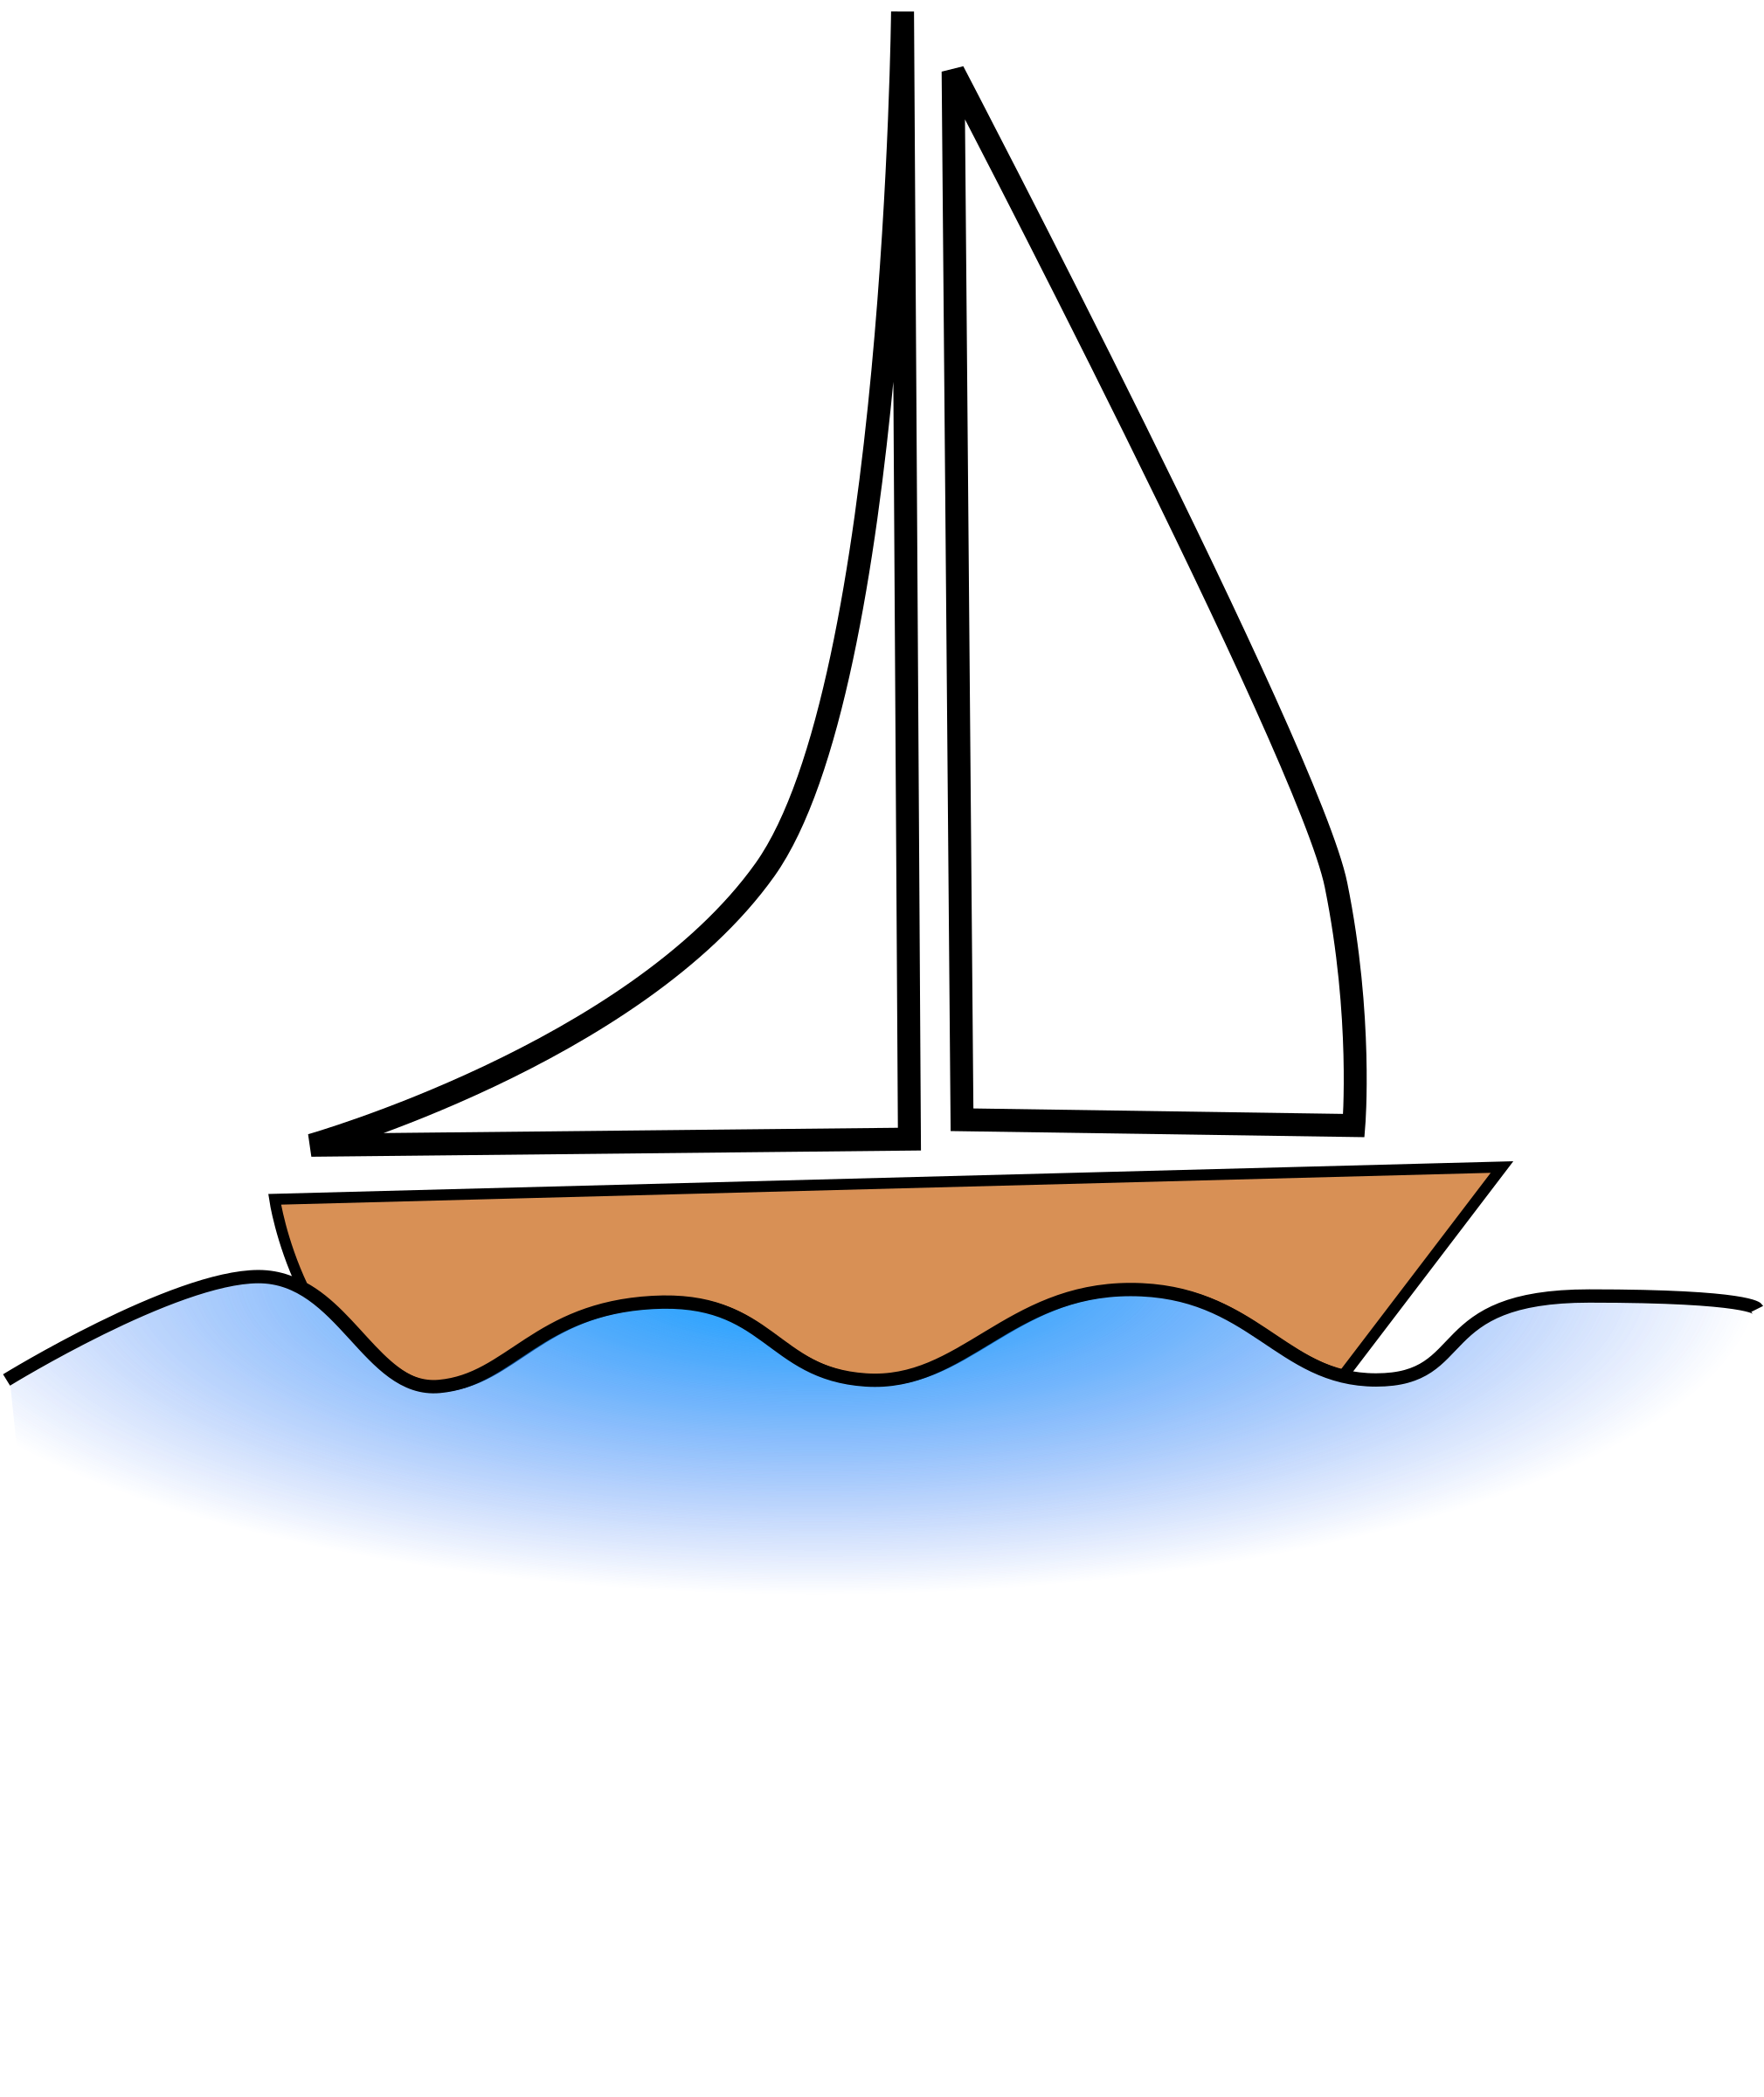 Sailing Boat clipart water clipart #11